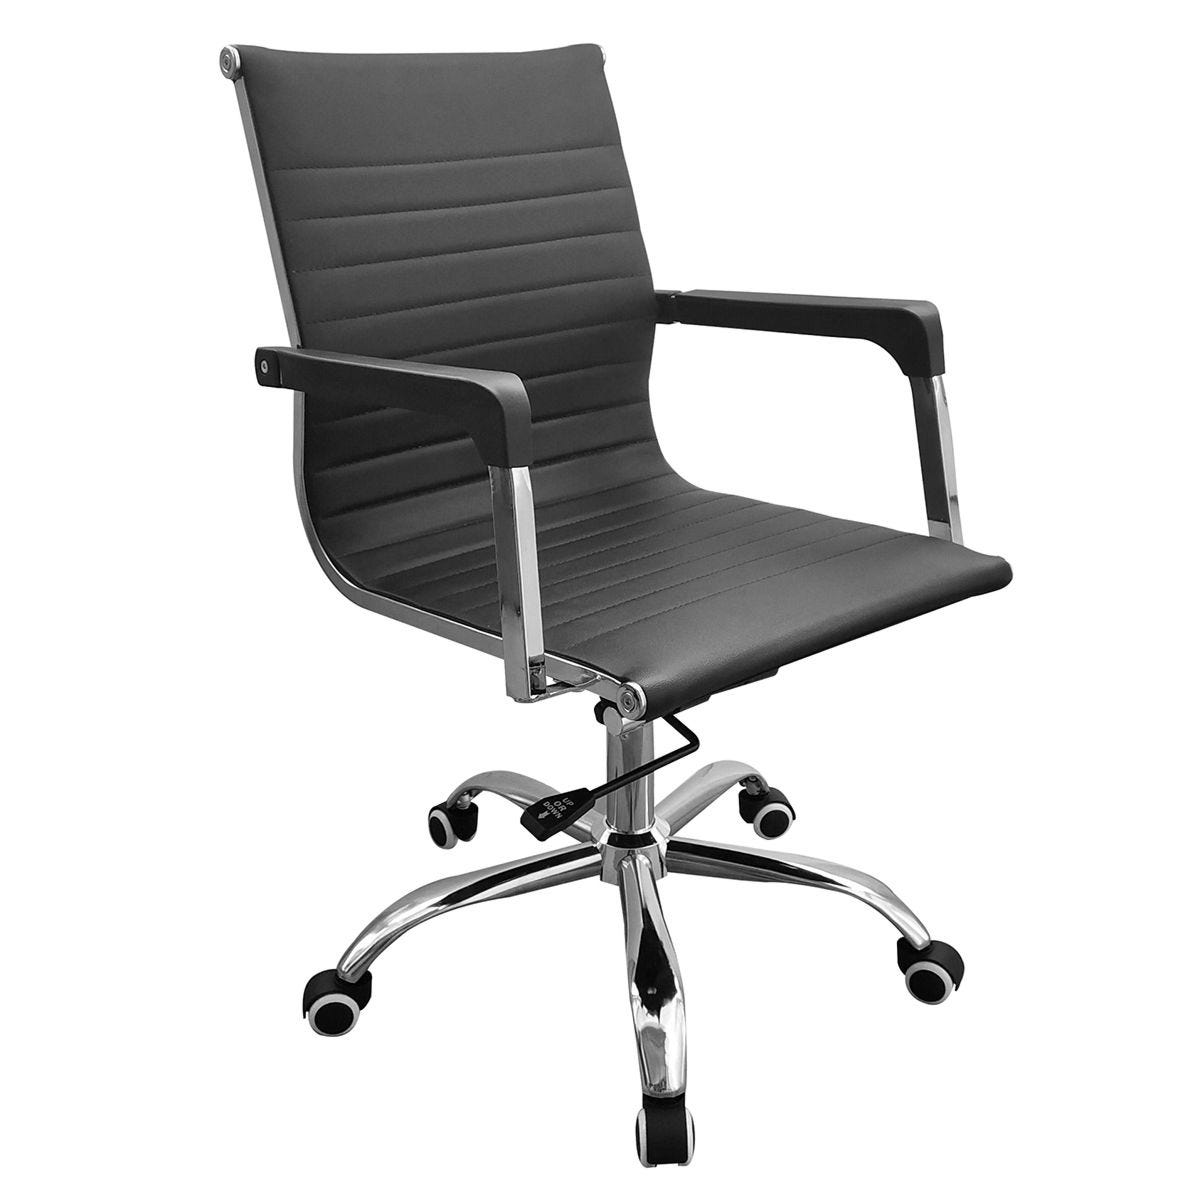 Loft Home Office Home Office Faux Leather Chair with Contour Back & Chrome Base - Black